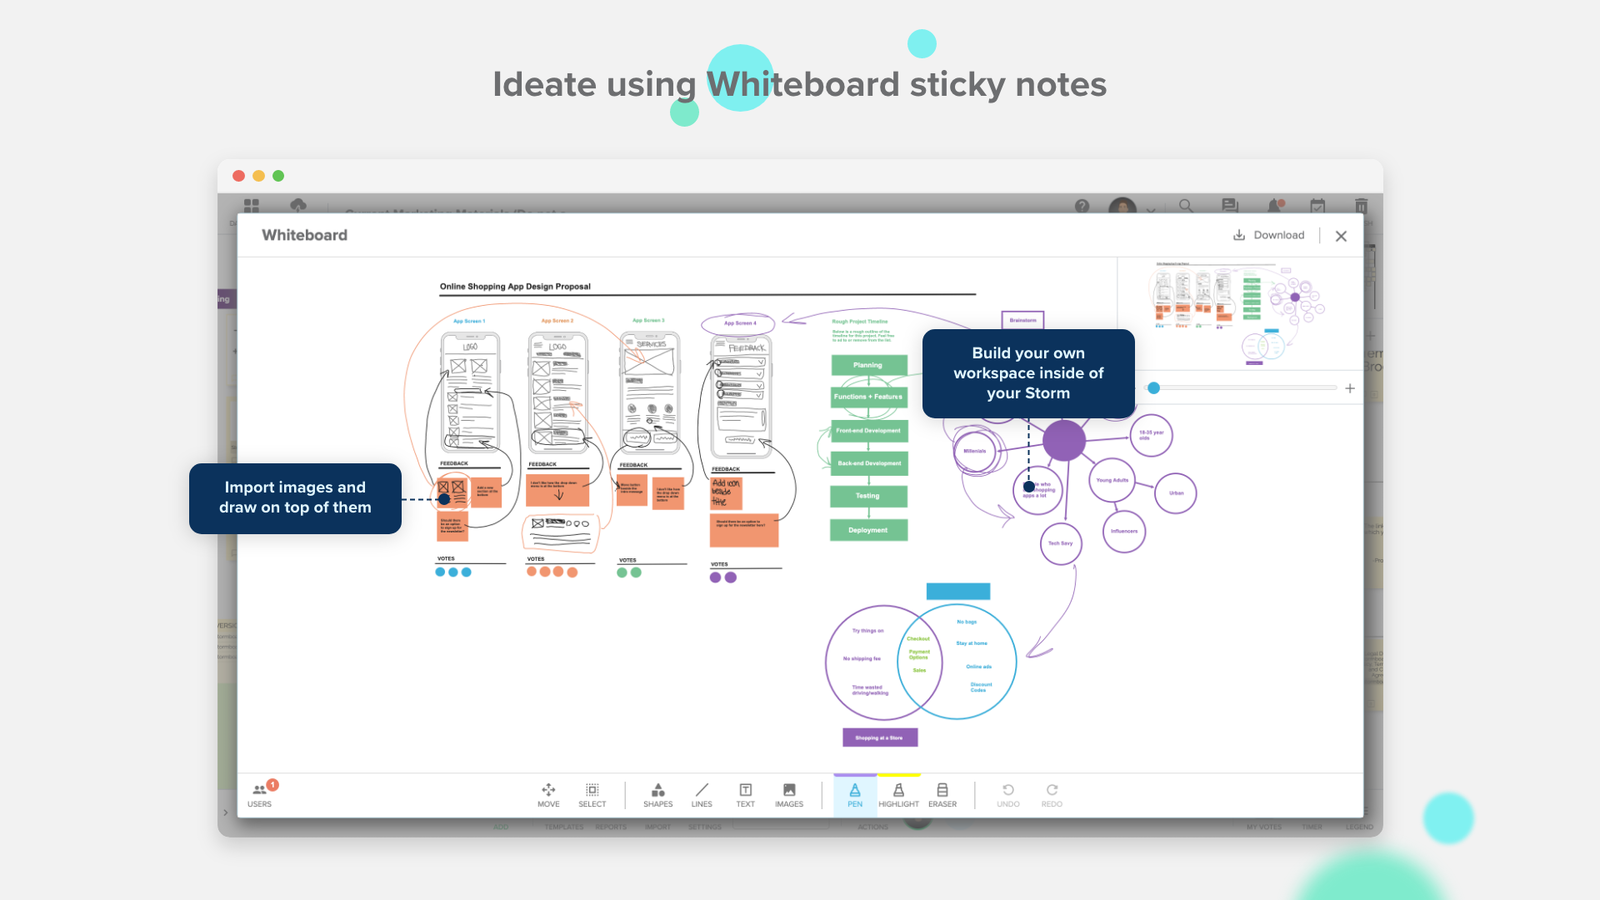 Ideate using Whiteboard sticky notes